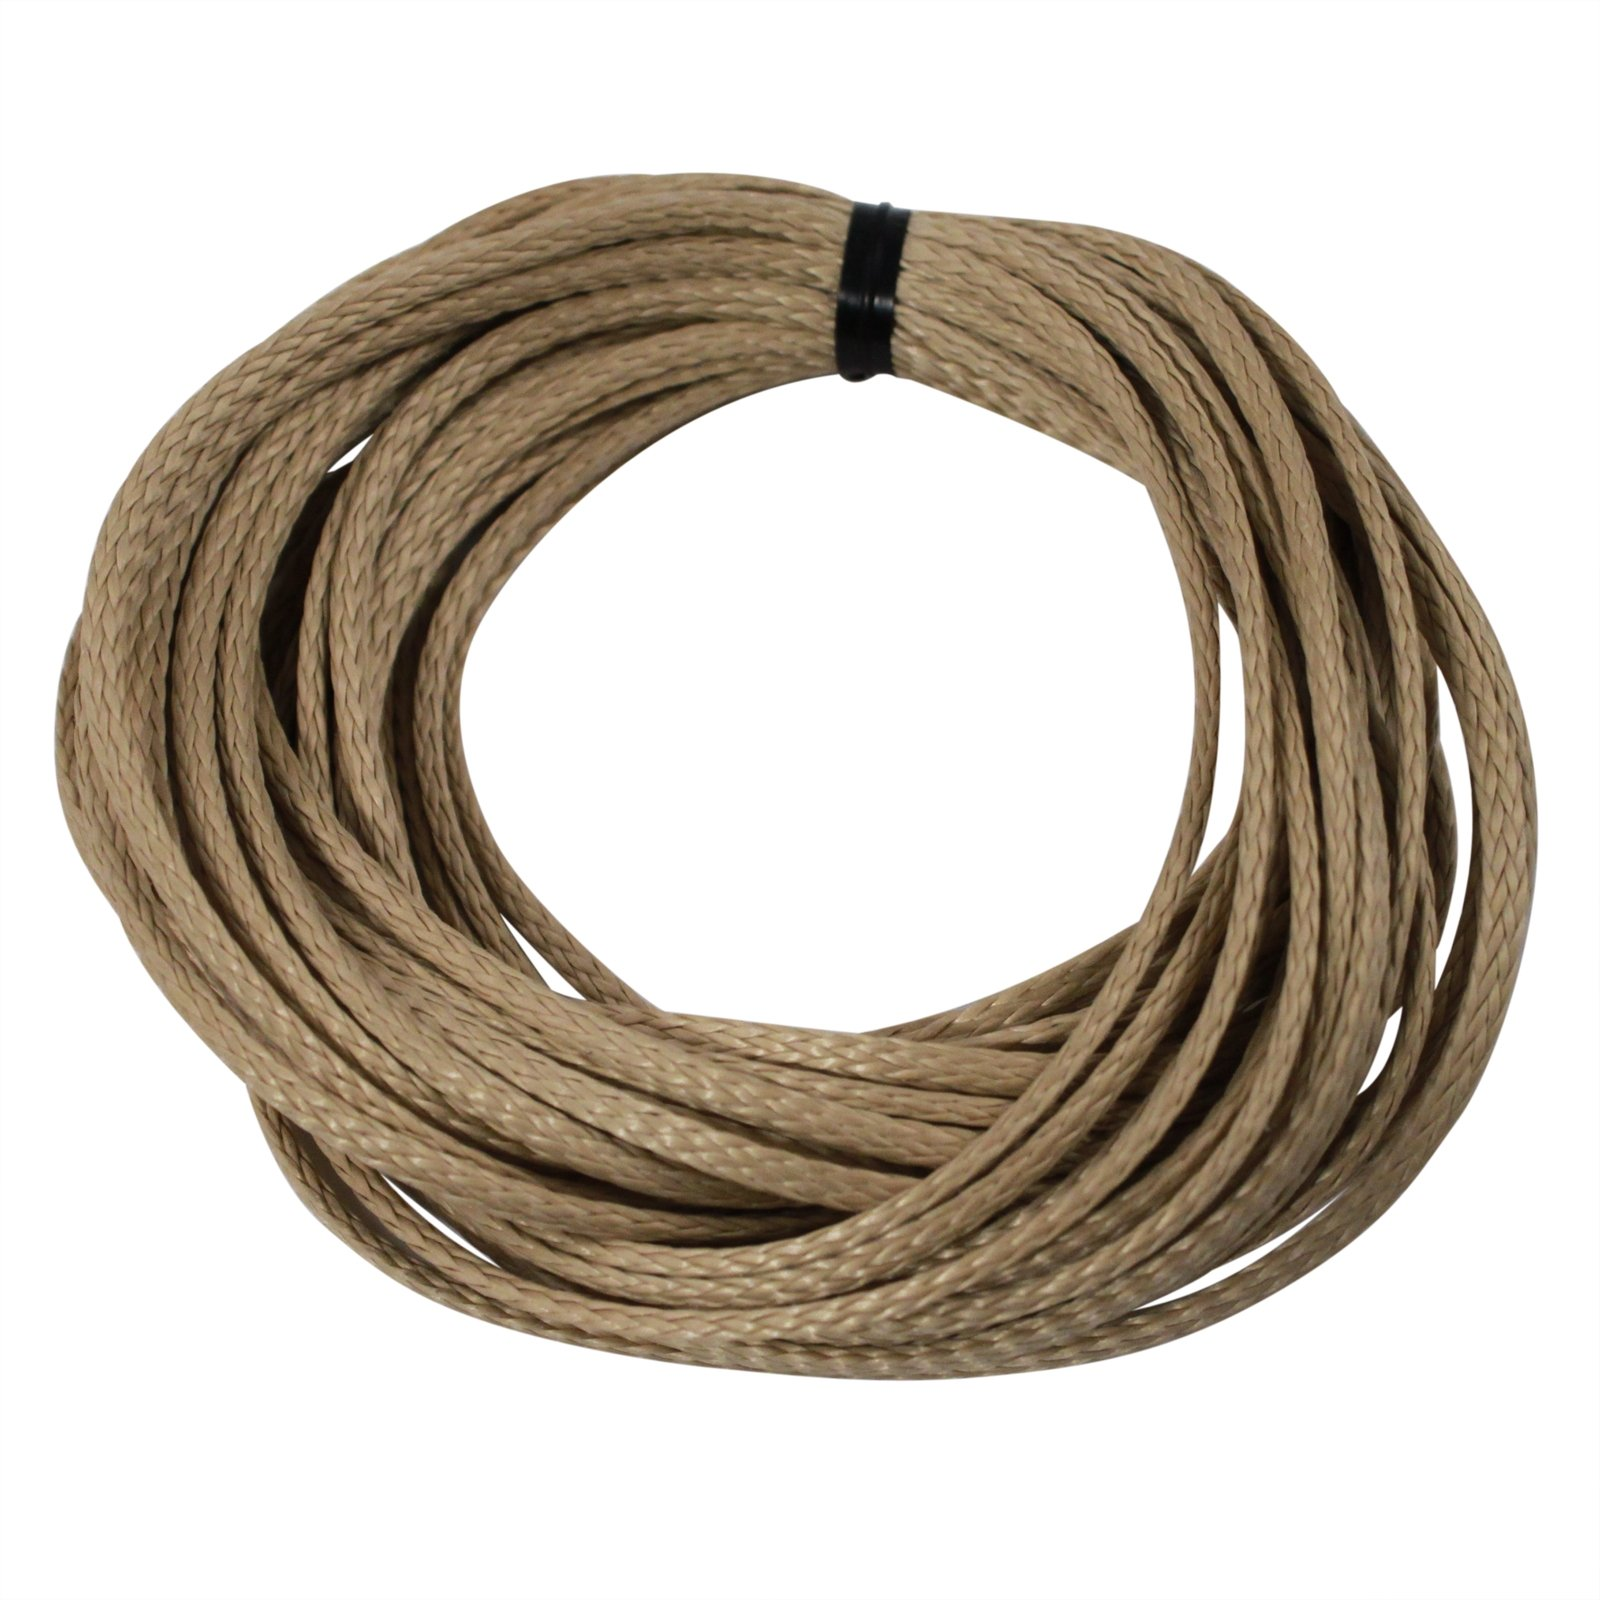 ASR Outdoor Braided Technora Survival Rope 950lb Breaking Strength 40ft Natural